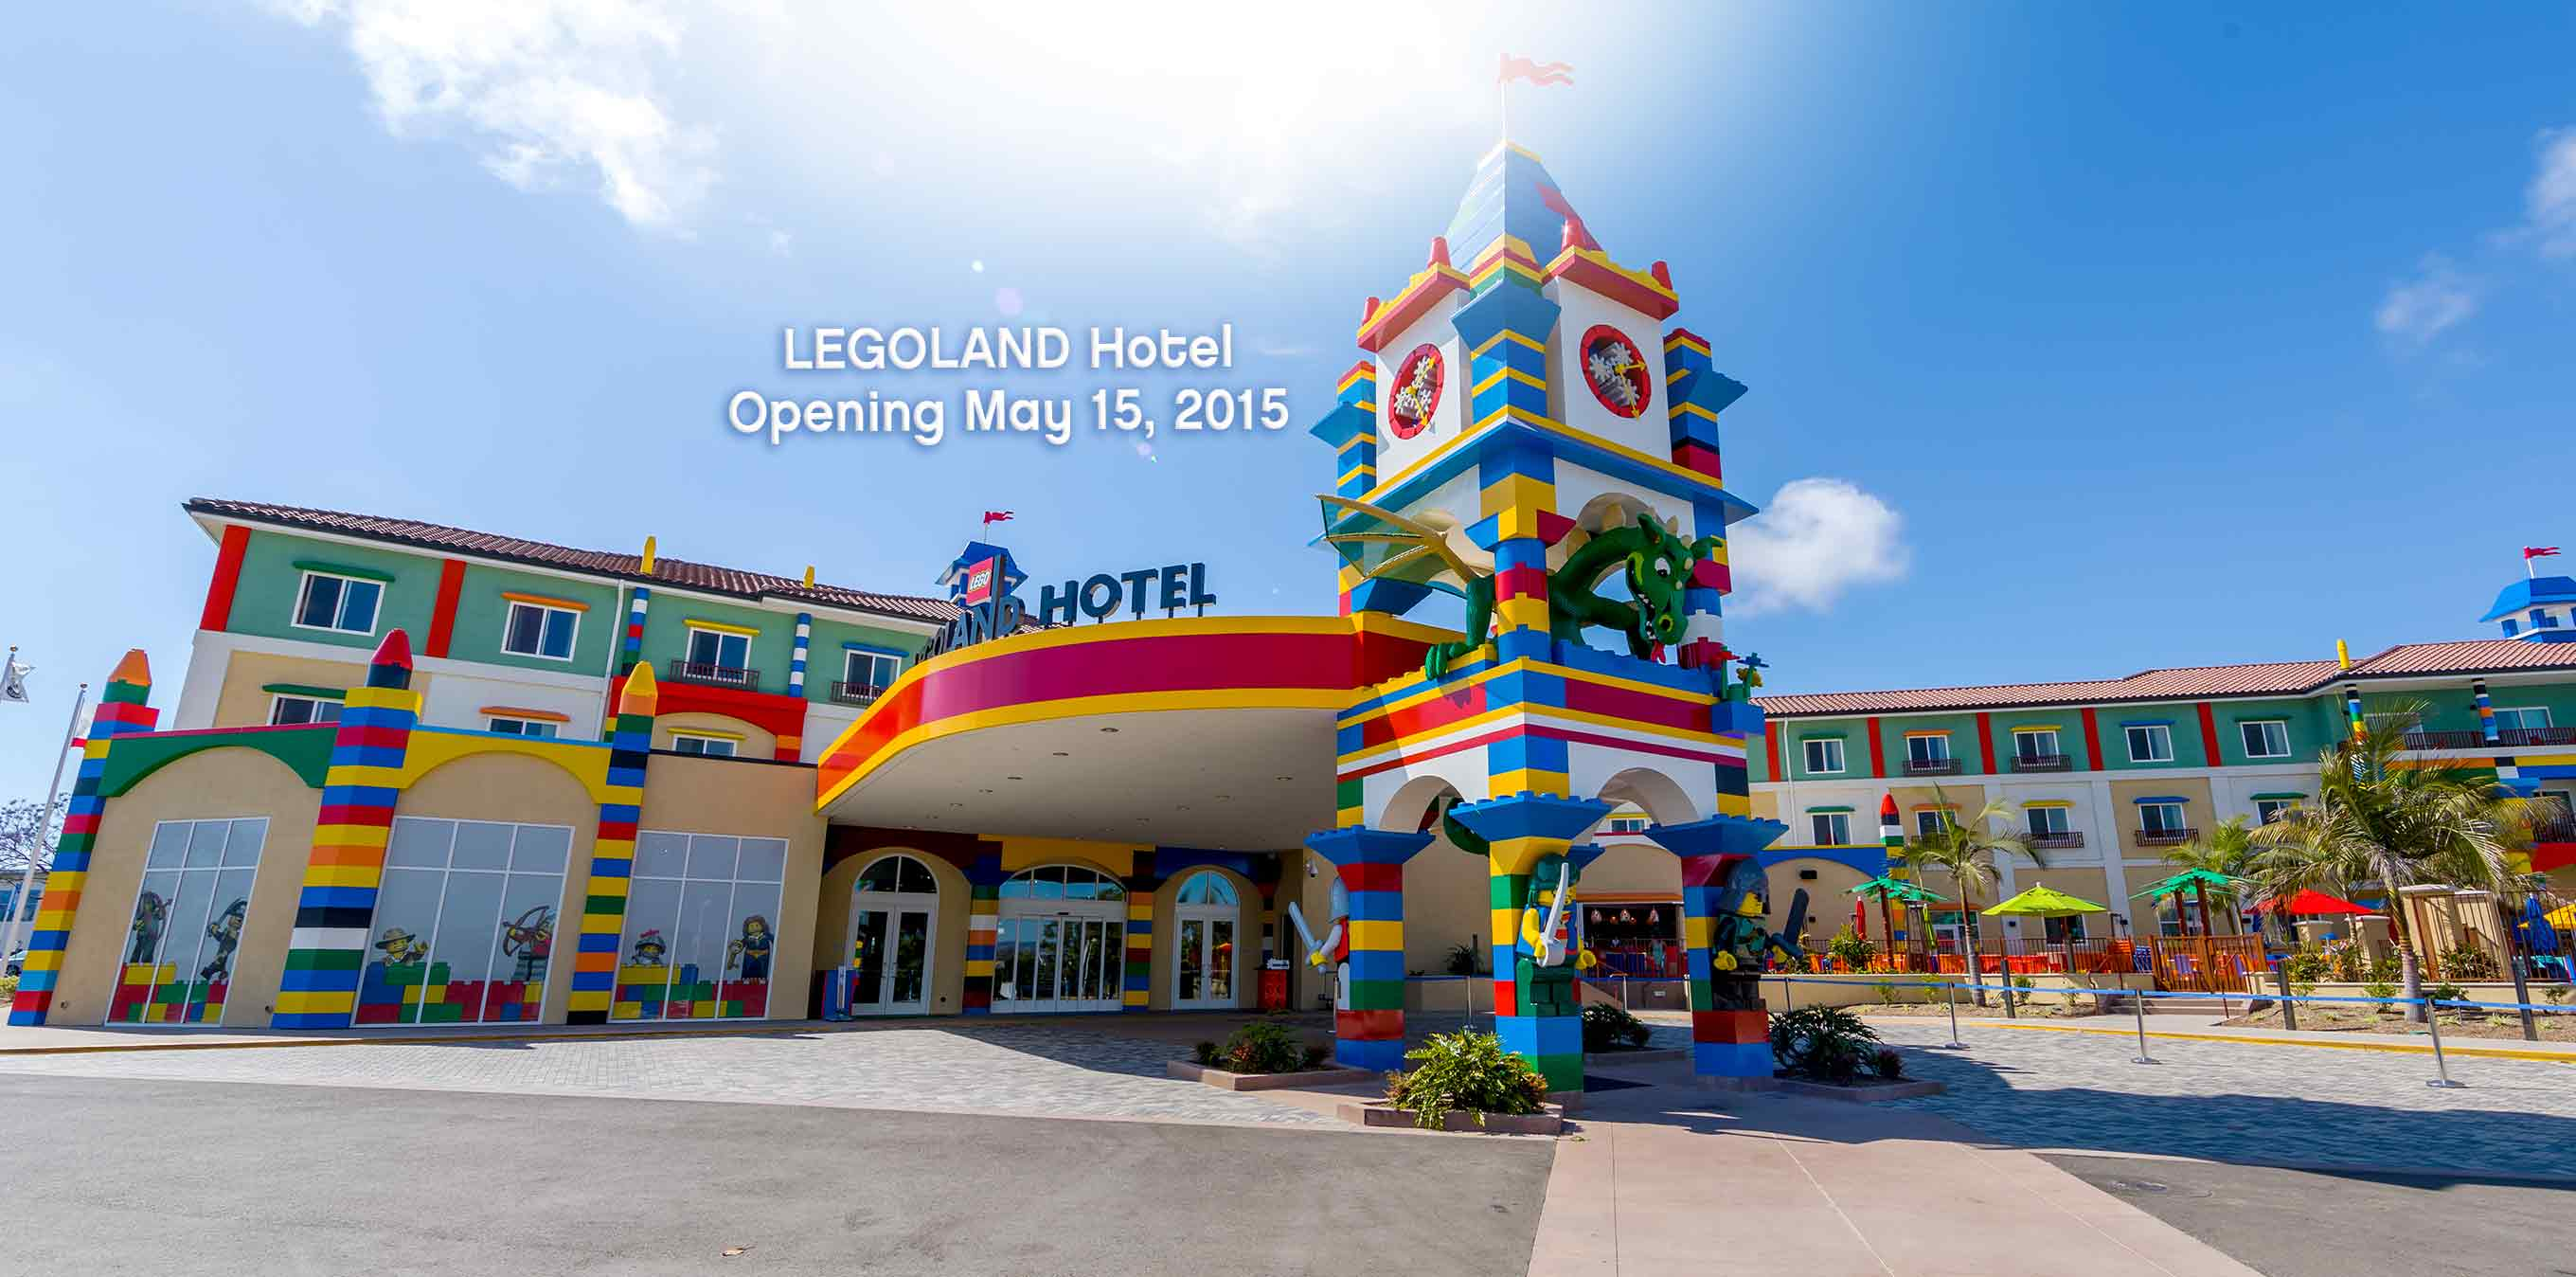 Orlando Hotel Packages With Tickets